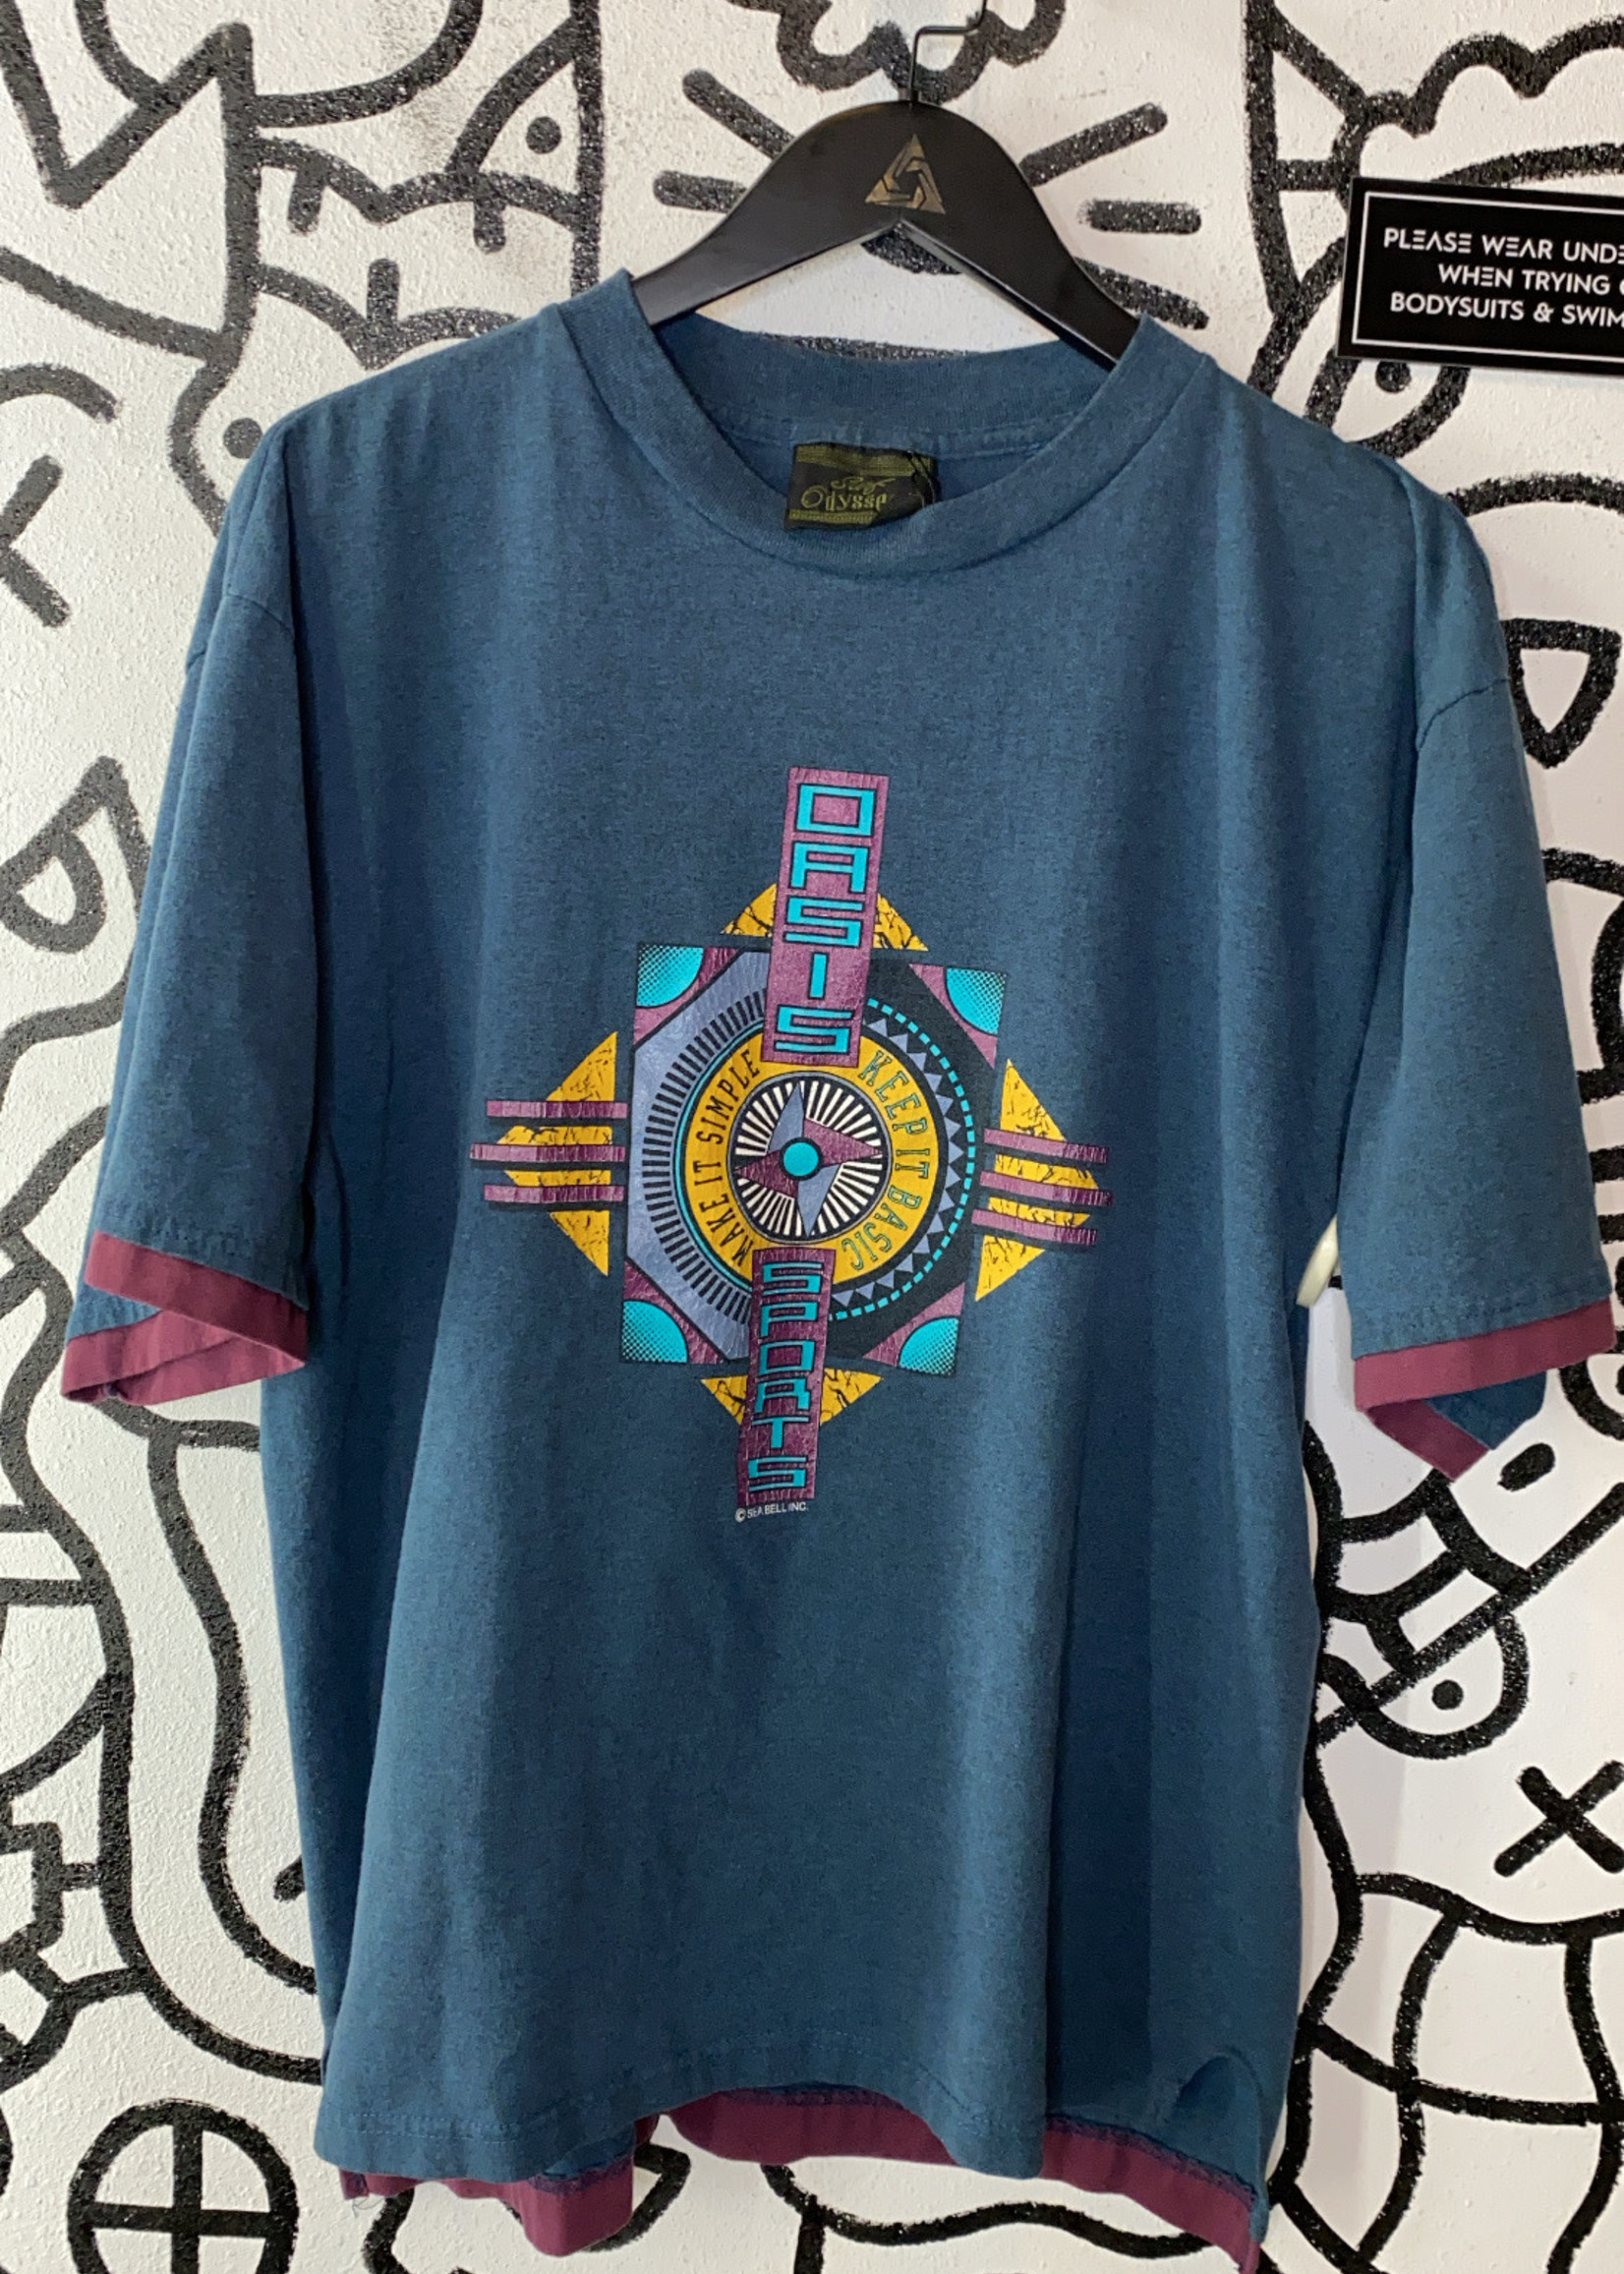 Oasis sports graphic t shirt XL